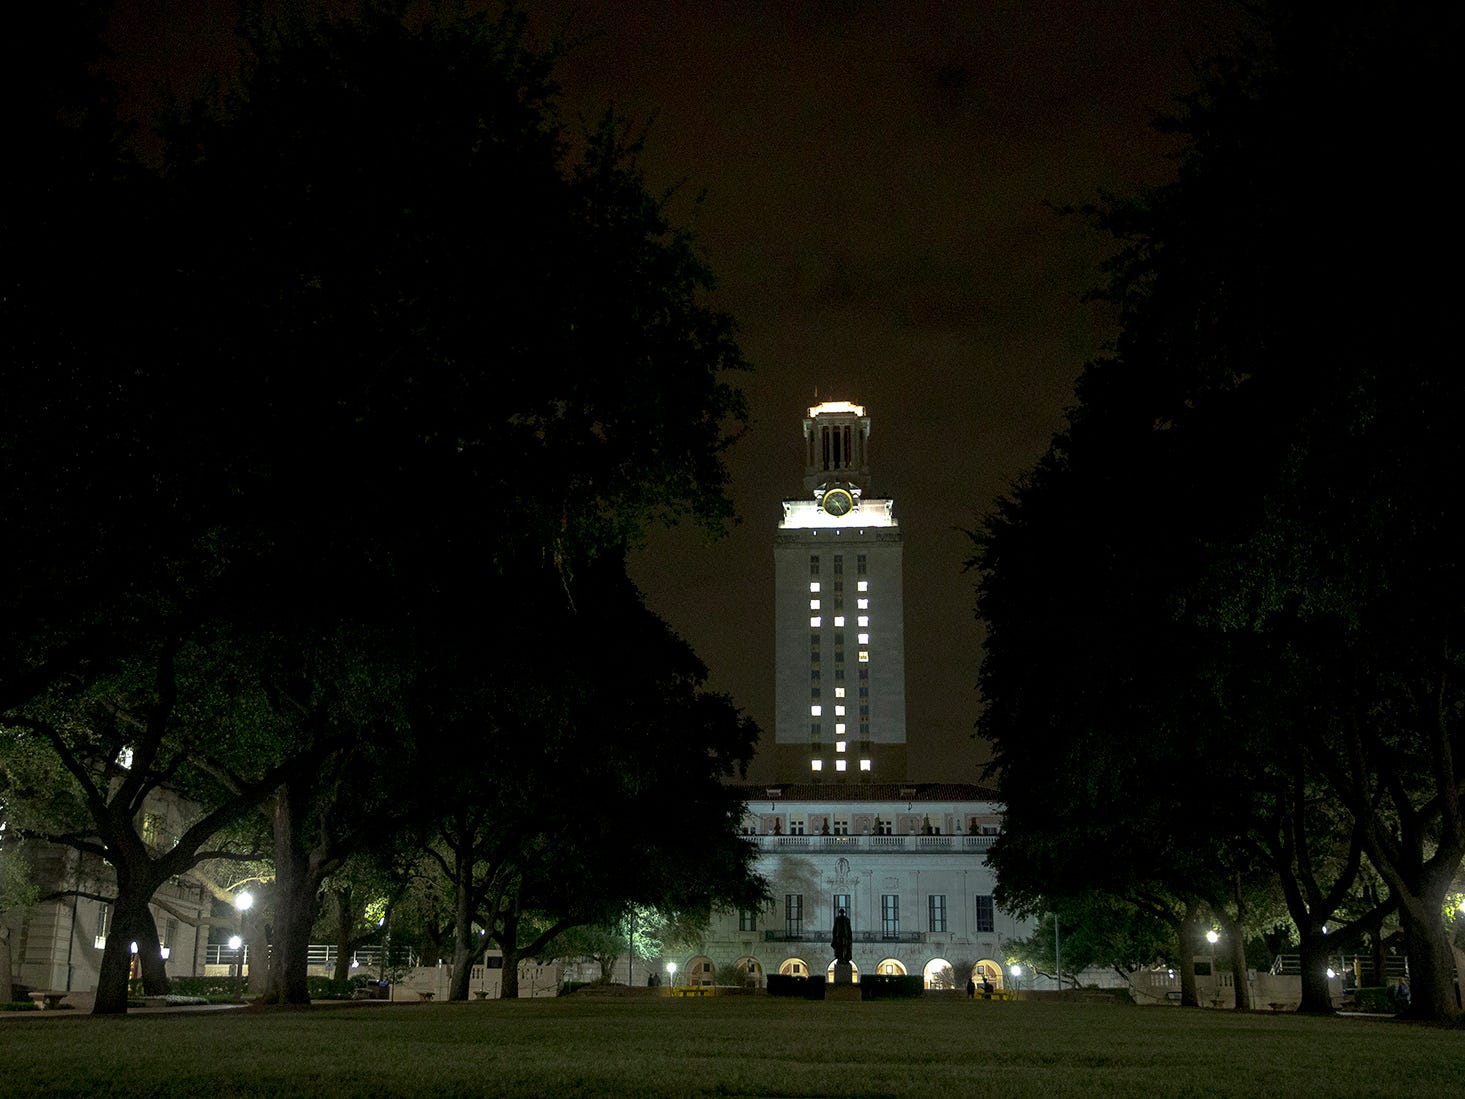 """The University of Texas at Austin tower is lit """"41"""" in honor of former President George H.W. Bush on Wednesday, Dec. 5, 2018, in Austin, Texas."""